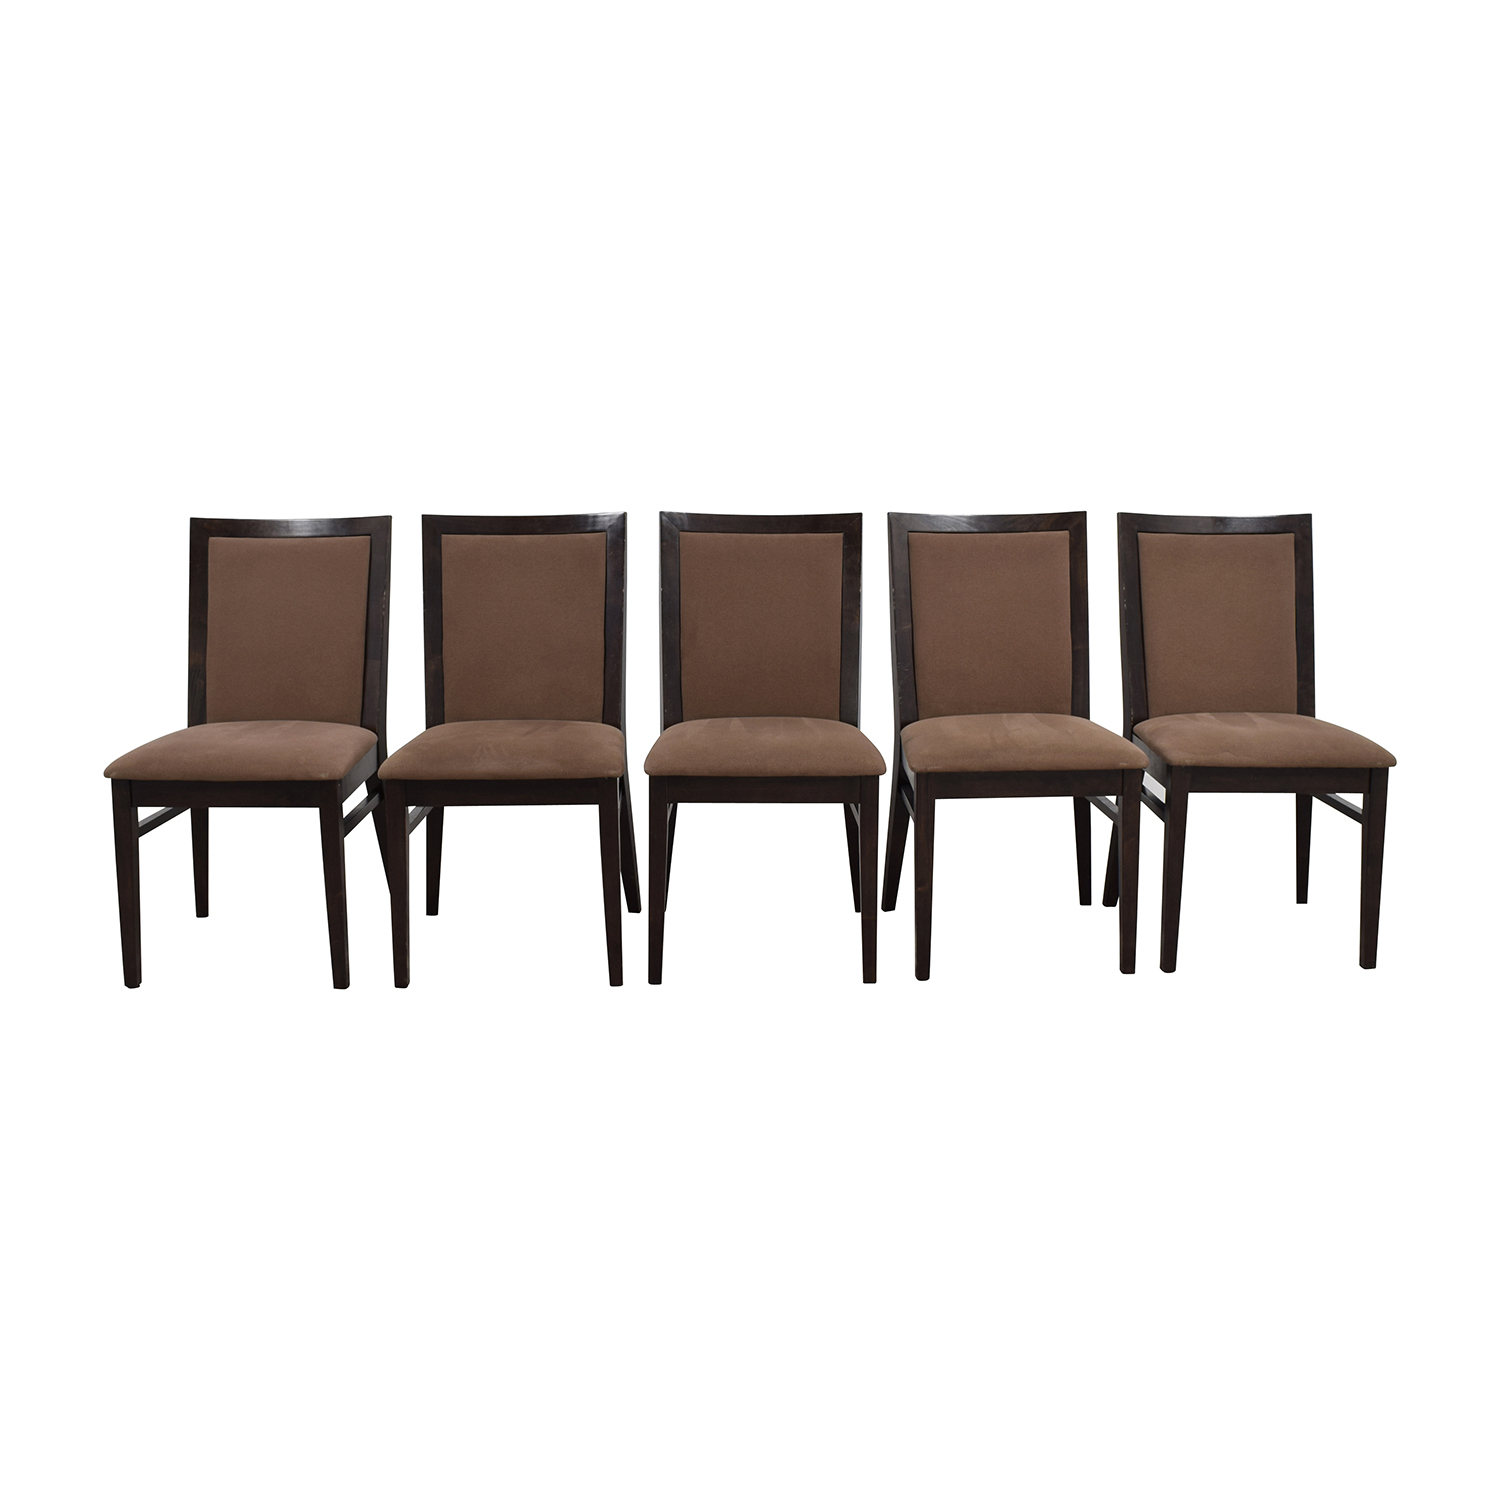 shop Context Mahogany Brown Upholstered Dining Chairs Context